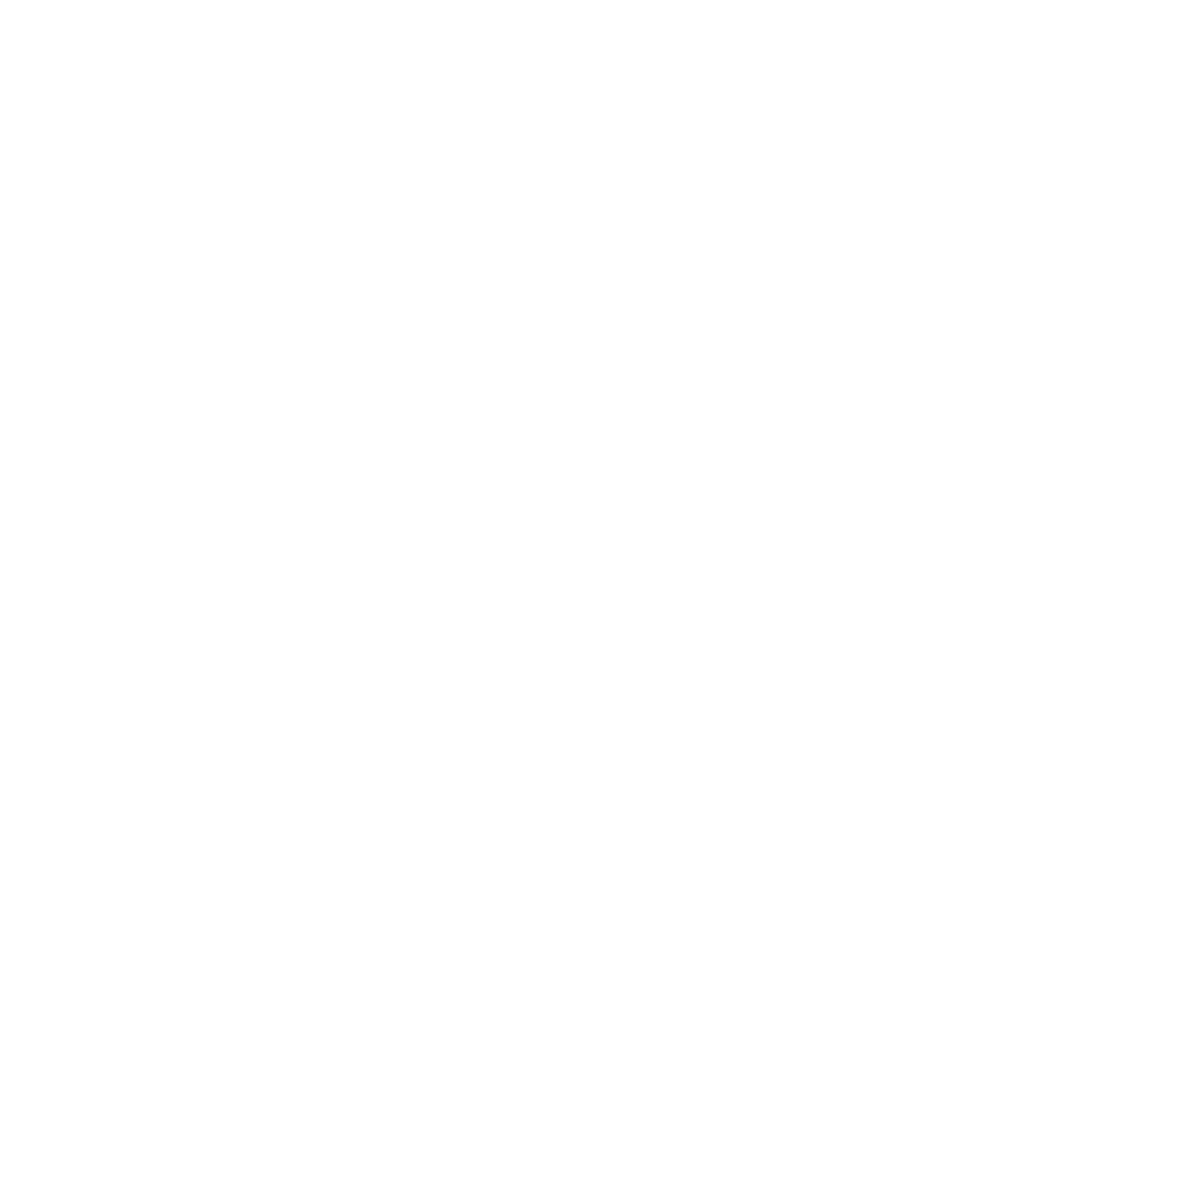 Stop clock and bag of money with dollar sign icon